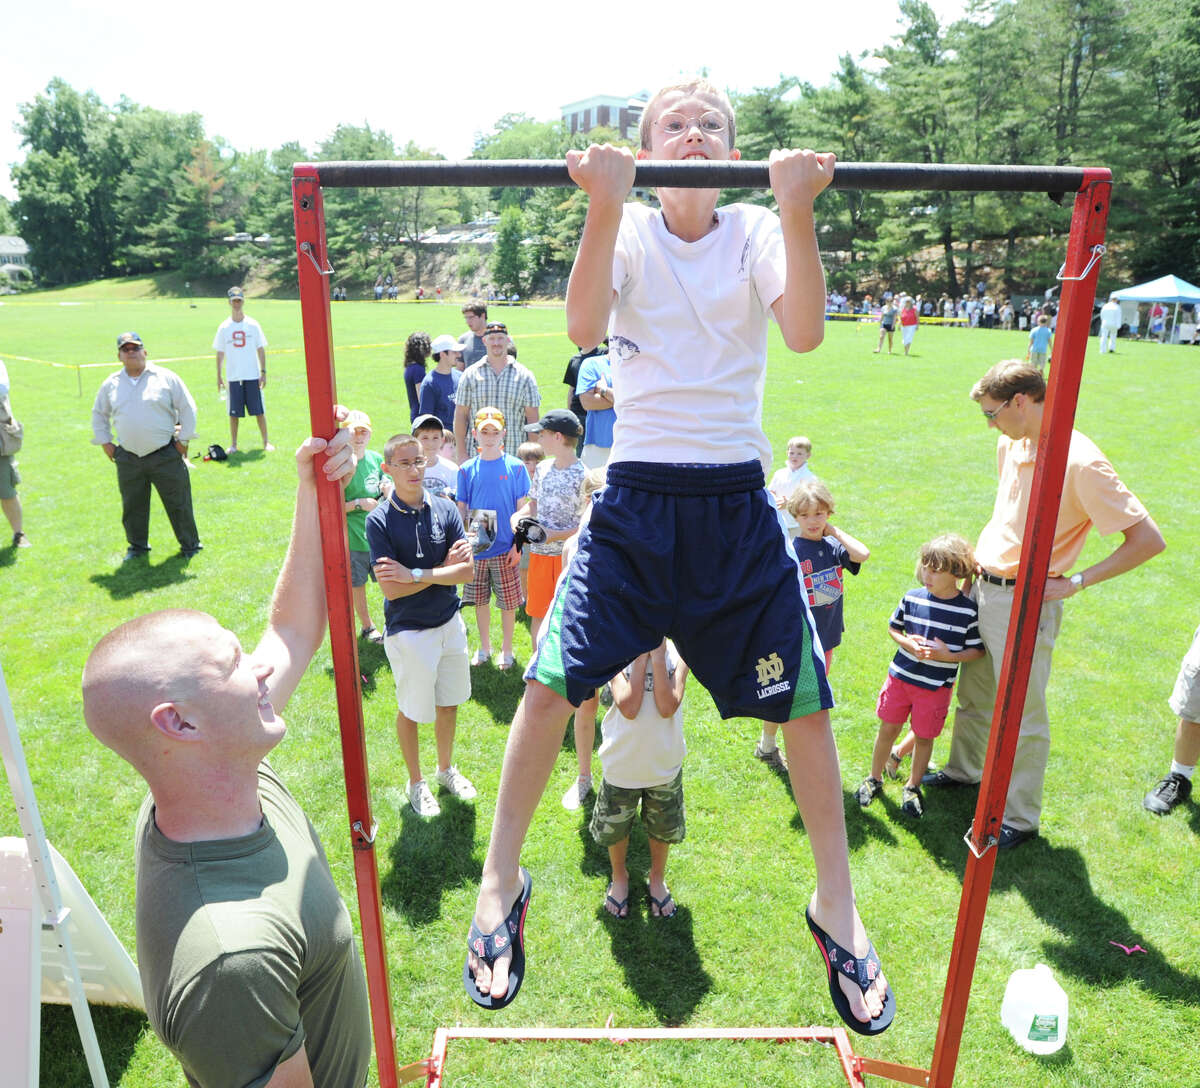 Joseph McCurdy, 10, of Greenwich does chin-ups while being spotted by U.S. Marine Kevin Dickson, left, during the Salute to Veterans ceremony at Havemeyer Field in Greenwich, Saturday afternoon, June 23, 2012.